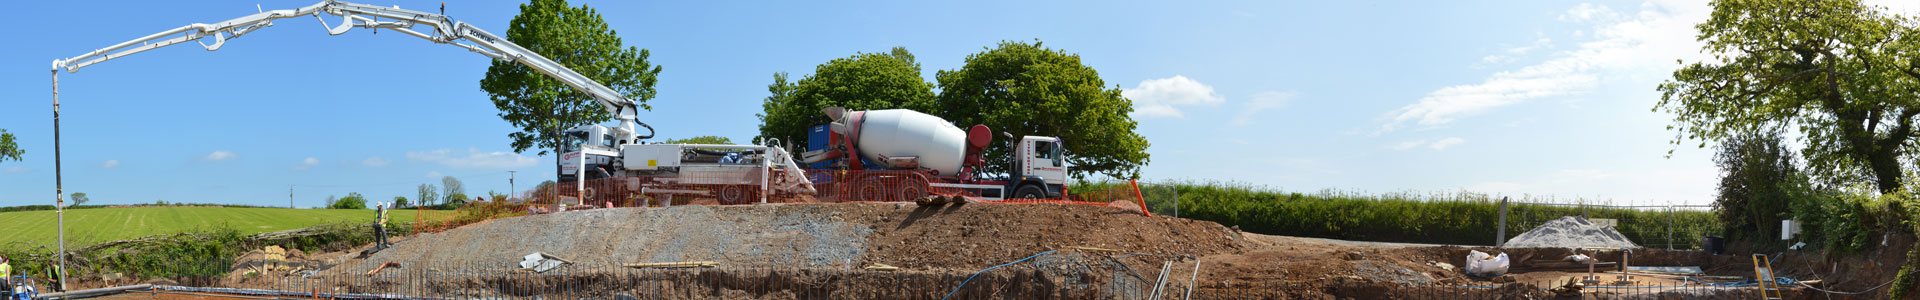 Ready Mix Concrete, Concrete Pumping concrete Plymouth from the leading Concrete Supplier in Plymouth, Volumetric on site Concrete